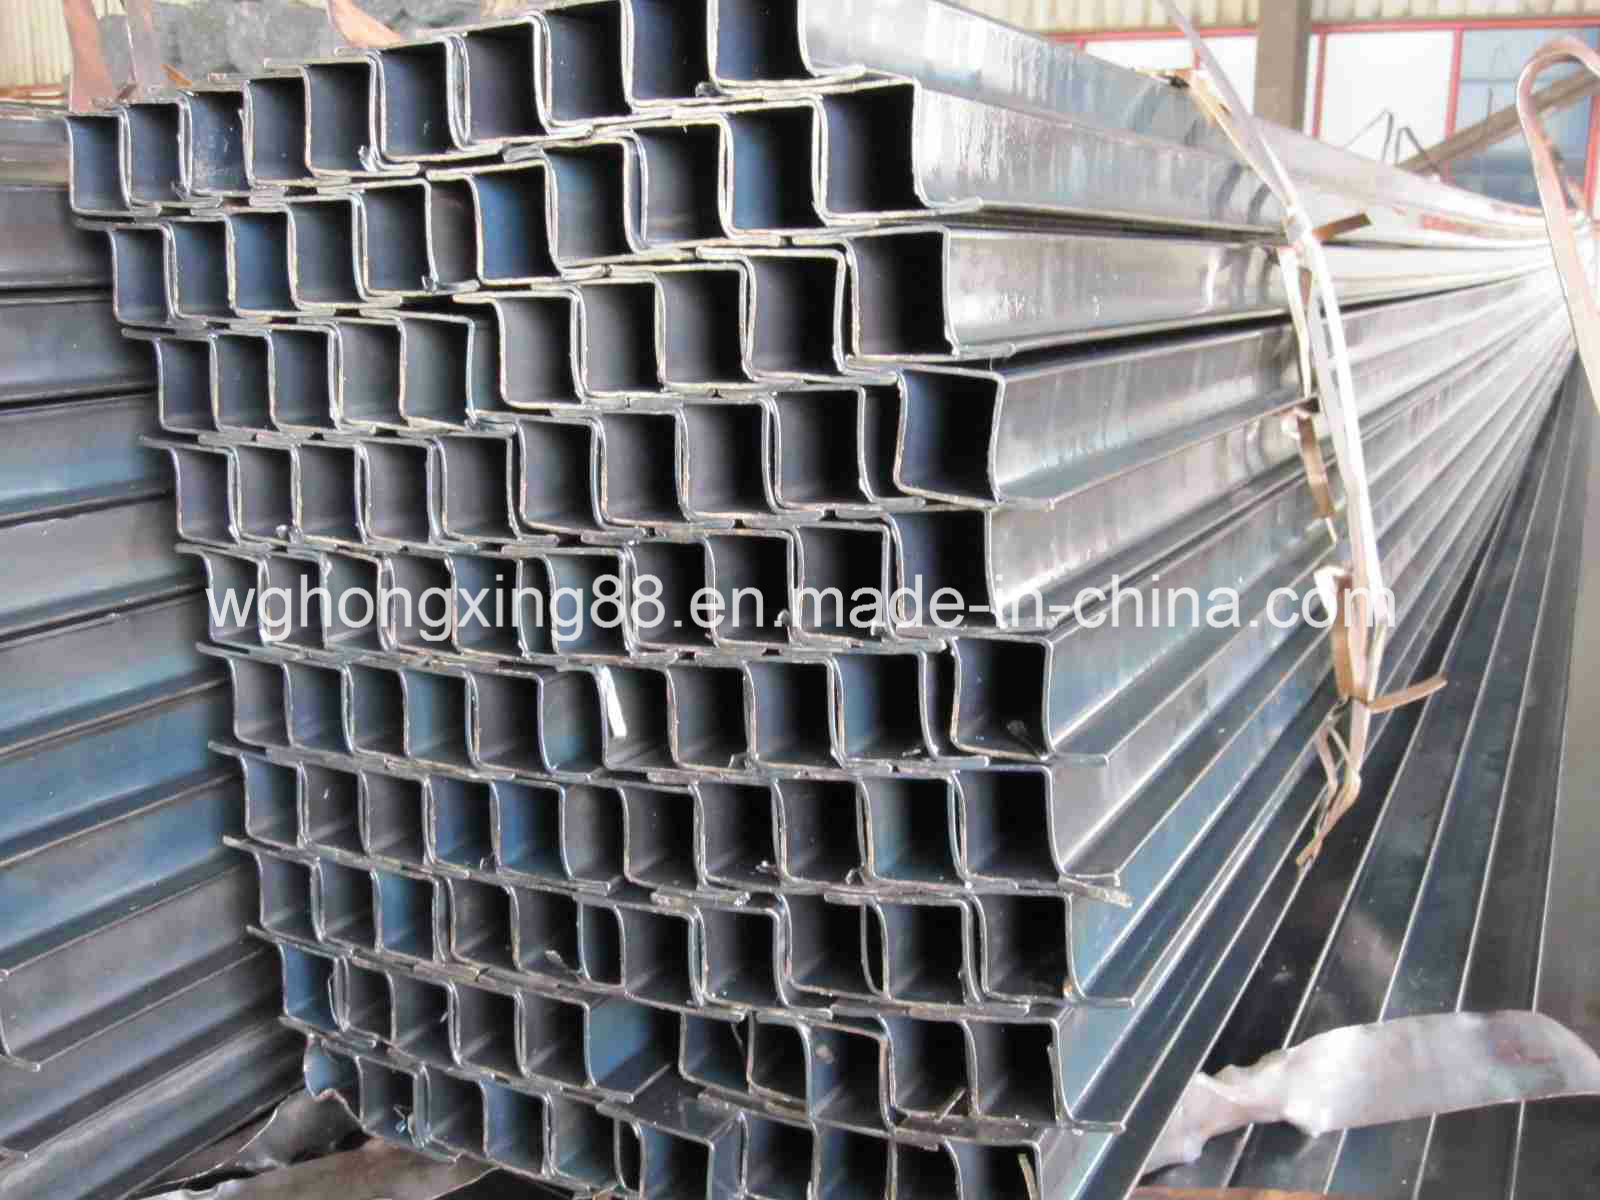 30-80G/M2 Zin Coated Pre Galvanized Square and Rectangular Steel Pipe